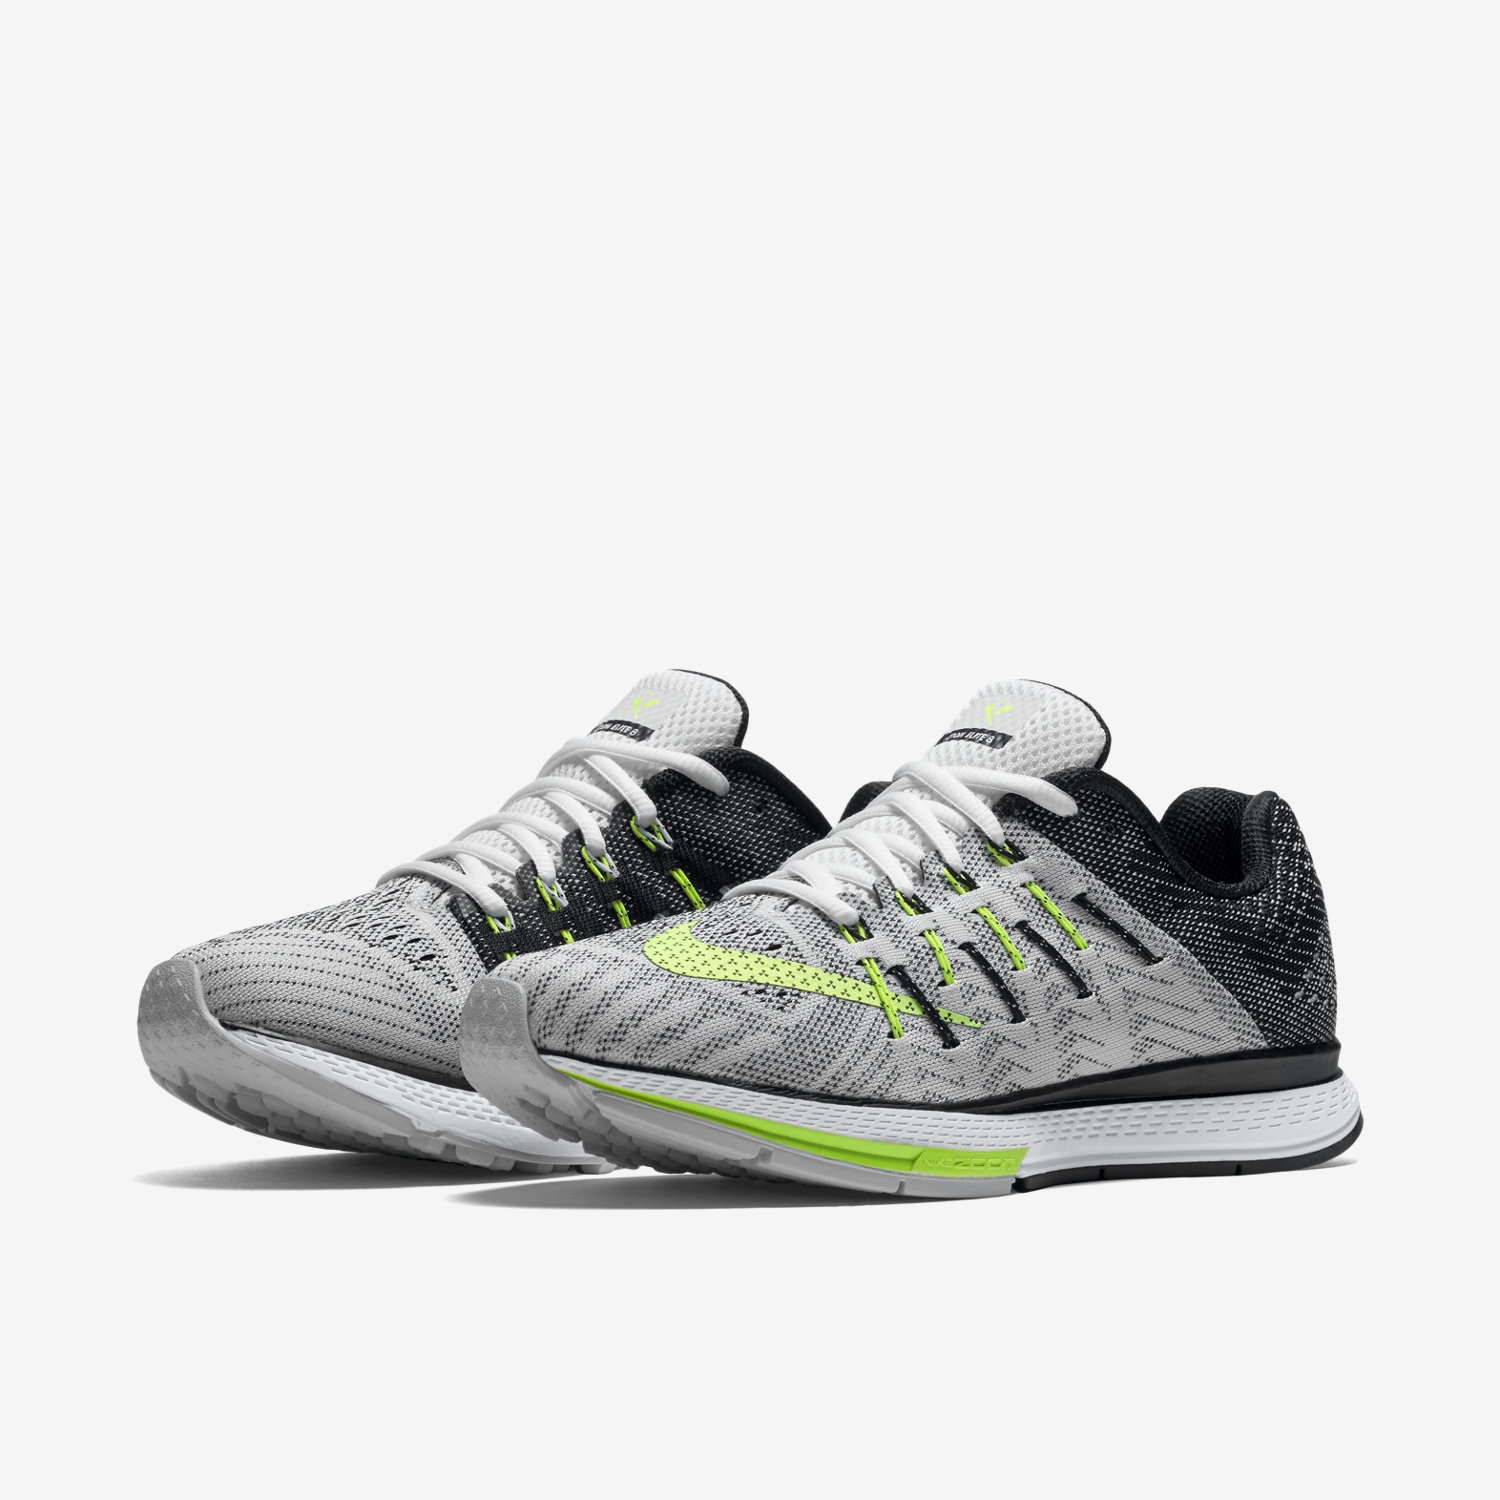 Nike Zoom Winflo 3 Oc Multicolor Multicolor 2, Nike, Shoes Shipped